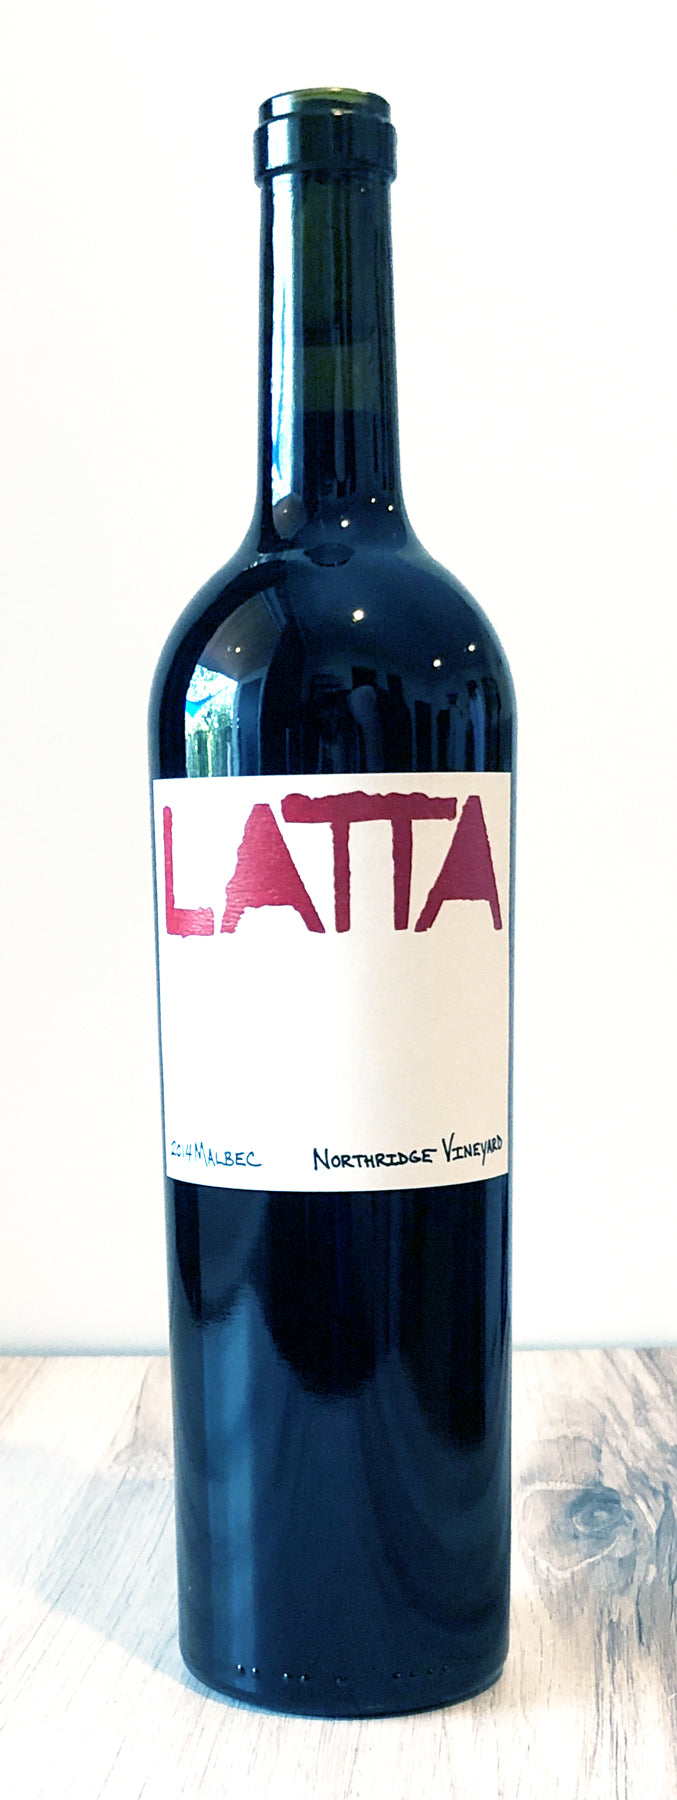 2014 Latta Wines Malbec Northridge Vineyard